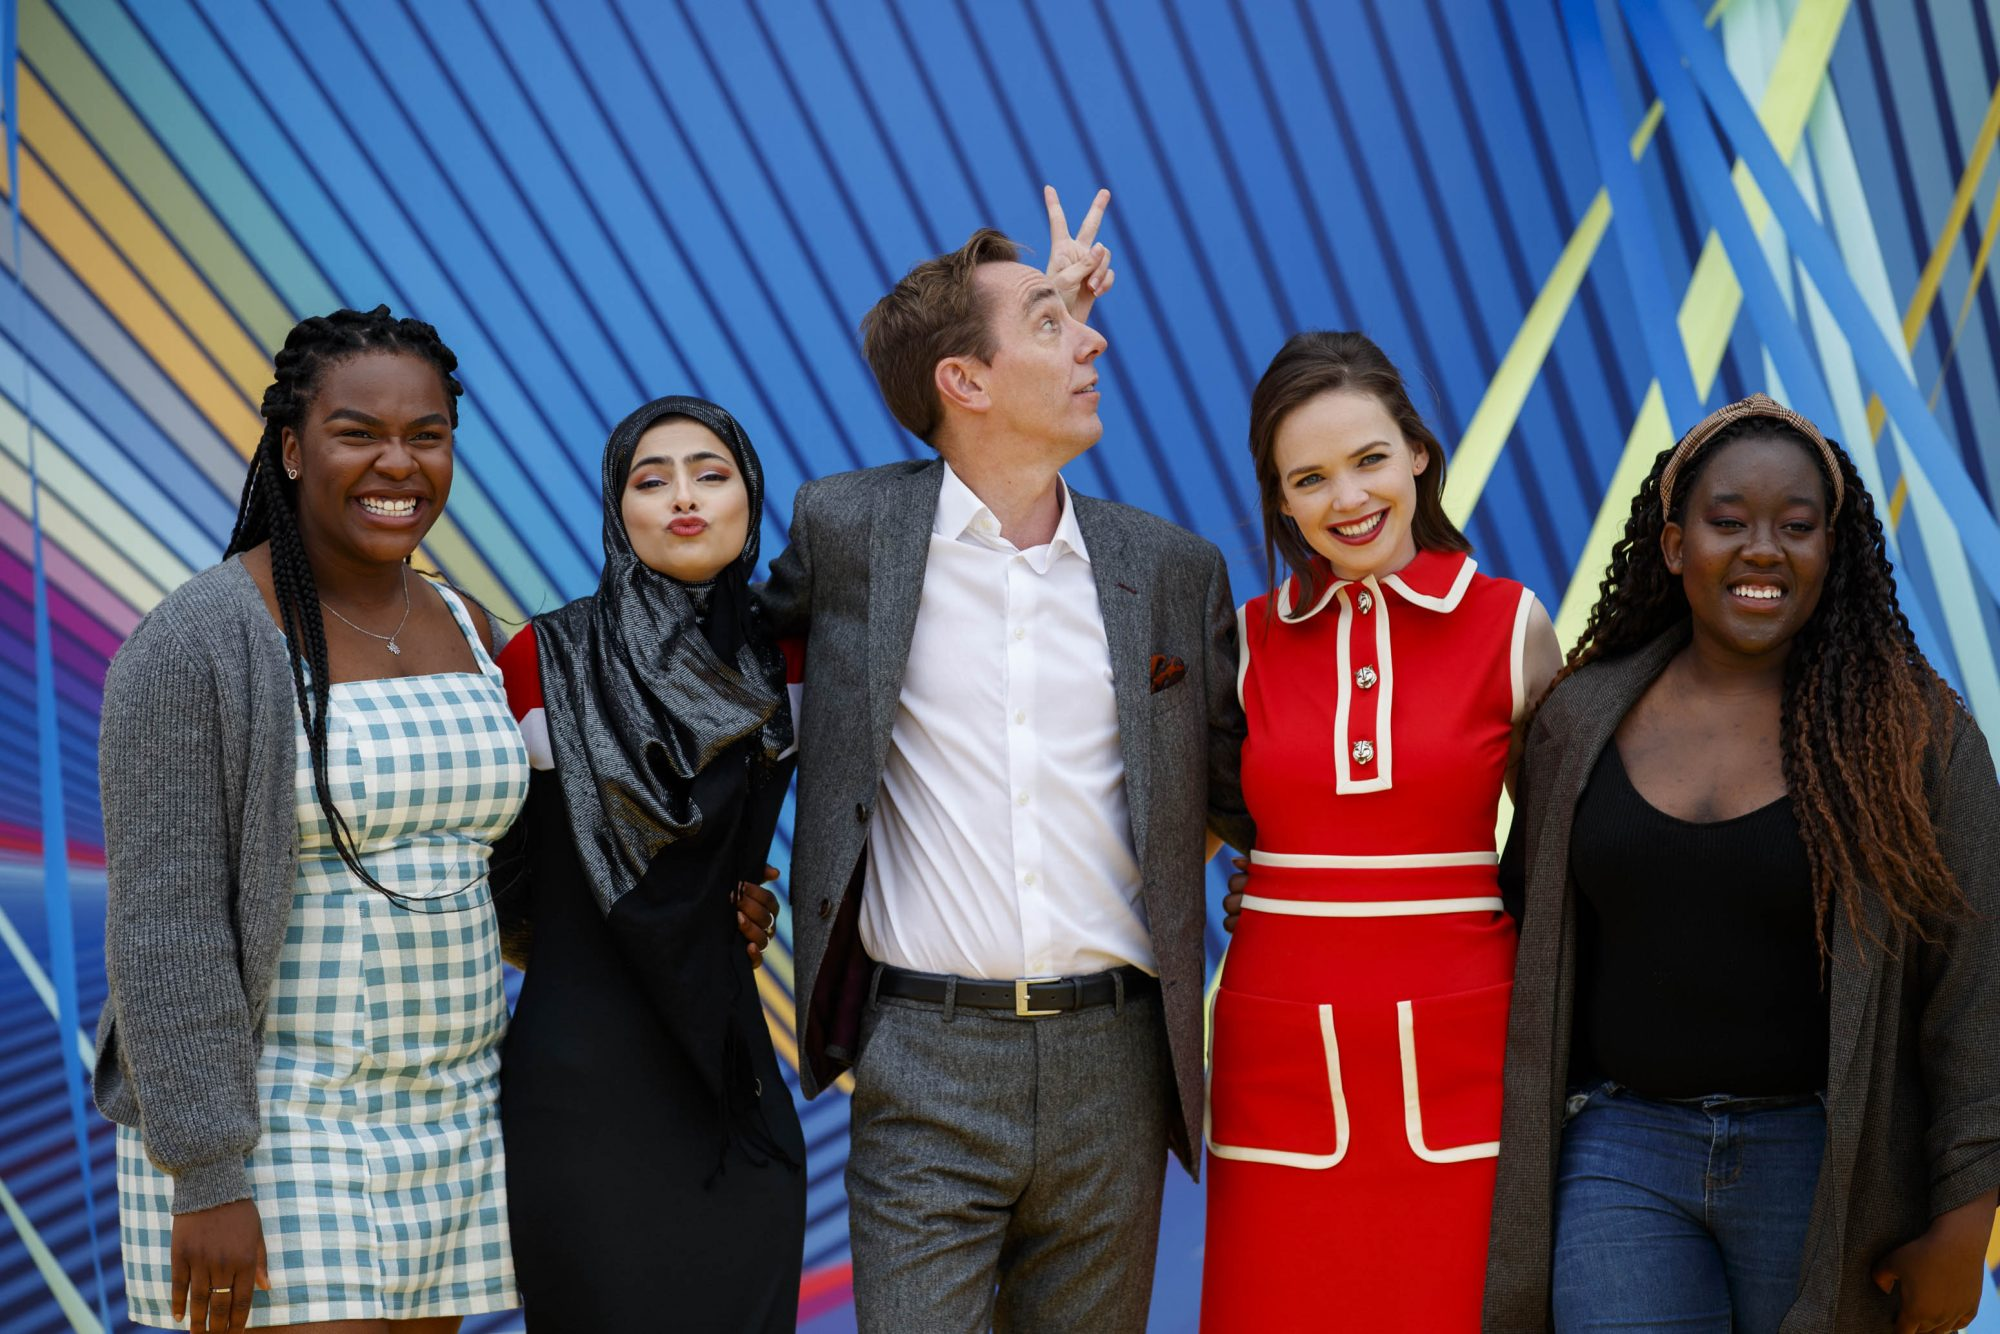 Ryan Tubridy is pictured with Demi Isaac Oviawe of Young Offenders, Minahil Sarfraz (The Teenage Ambassadors), Eileen O'Higgins (Dead Still) and Natasha Maimba (The Teenage Ambassadors) as RTÉ today announced a slate of new impactful Irish programming, star signings and a strong focus on climate as part of its upcoming new season. Picture: Andres Poveda